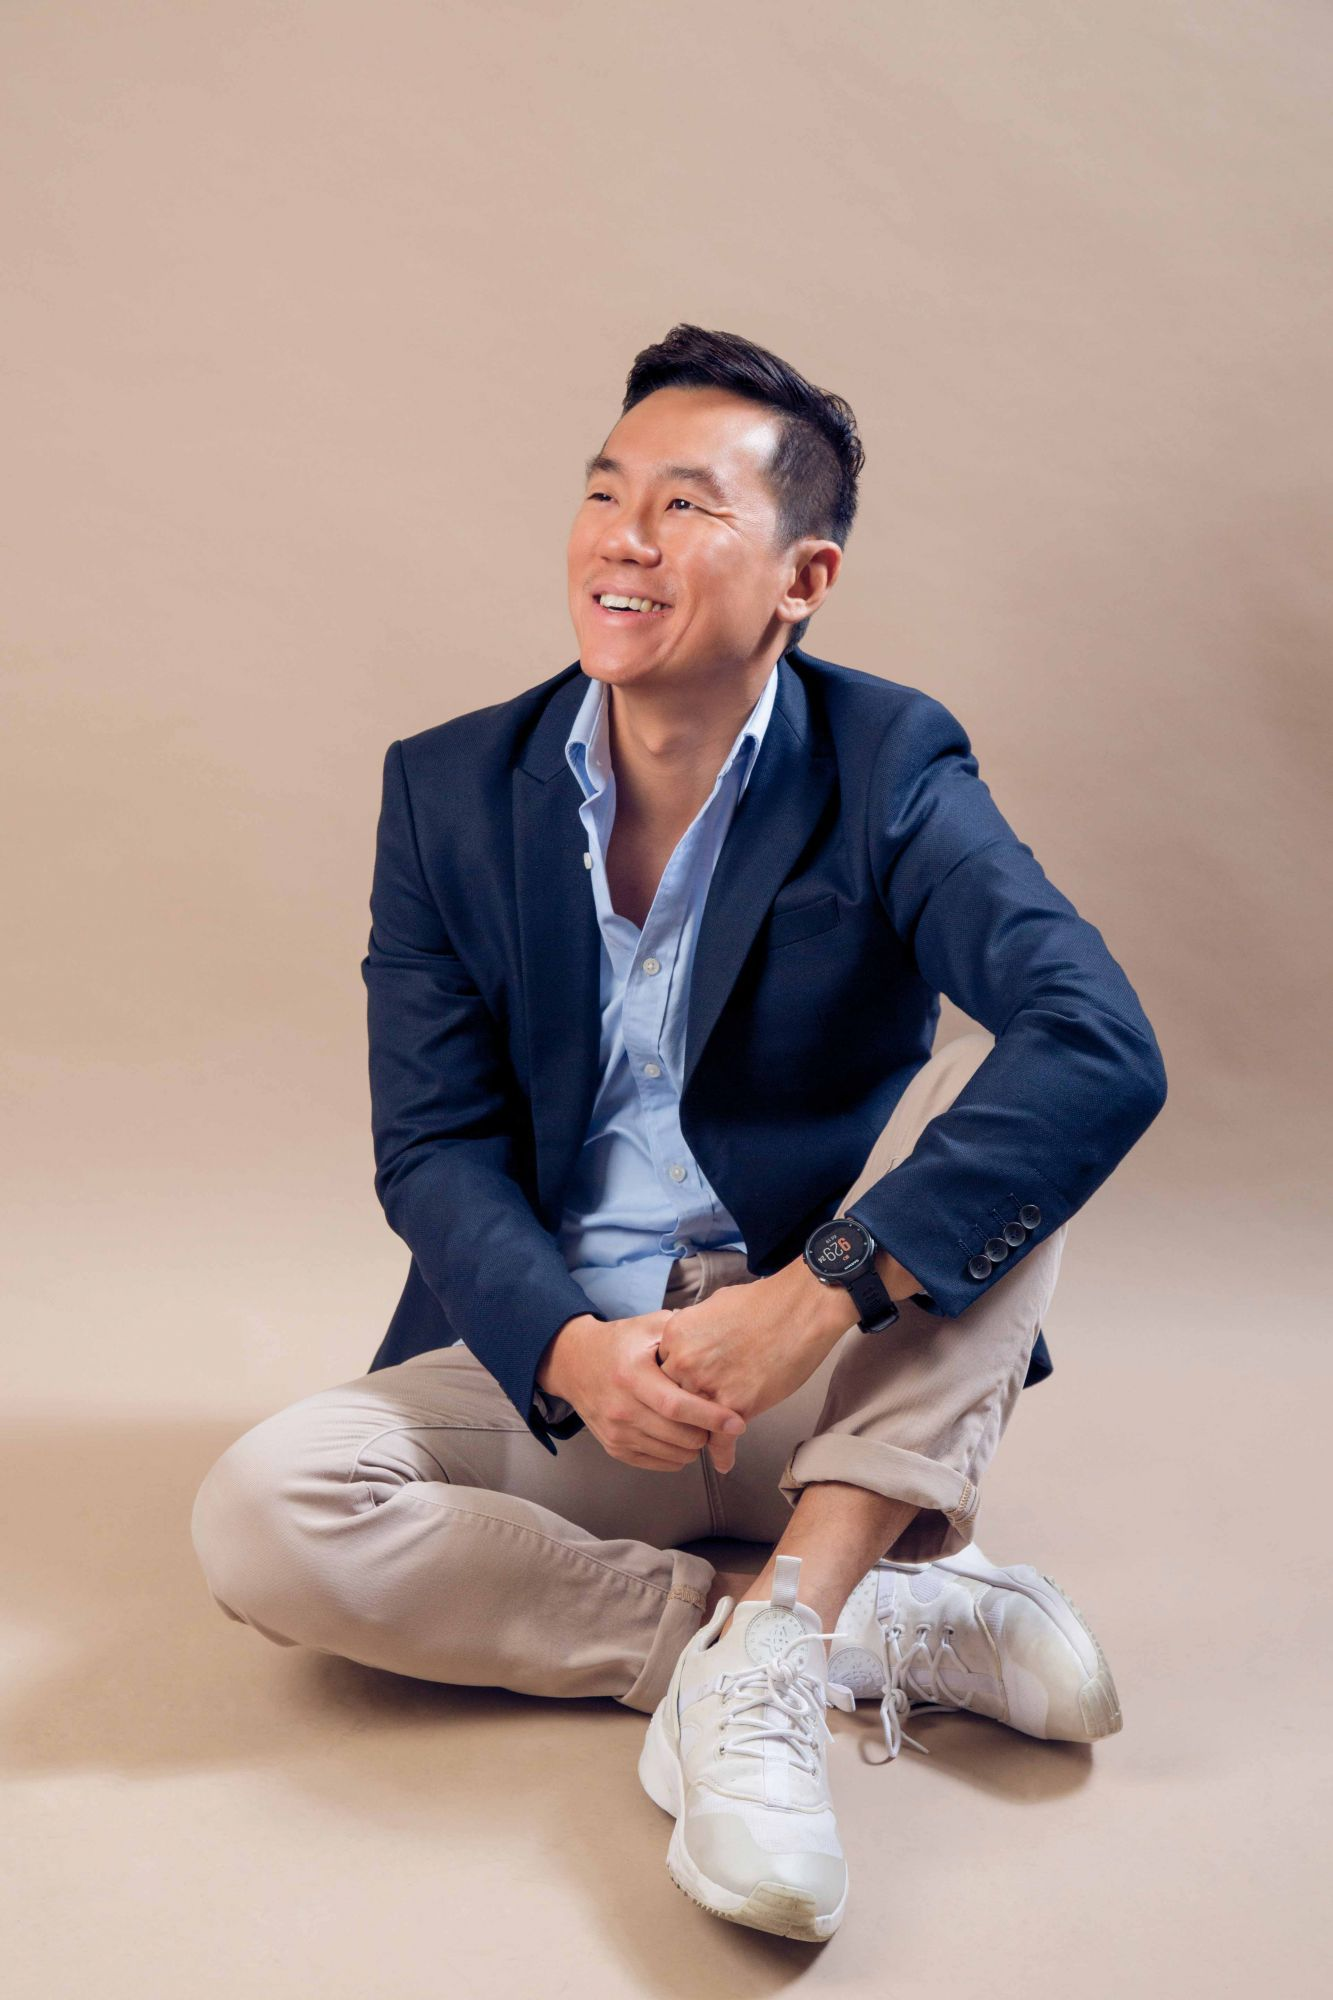 Supahands Co-Founder Mark Koh: 3 Things You Need To Know